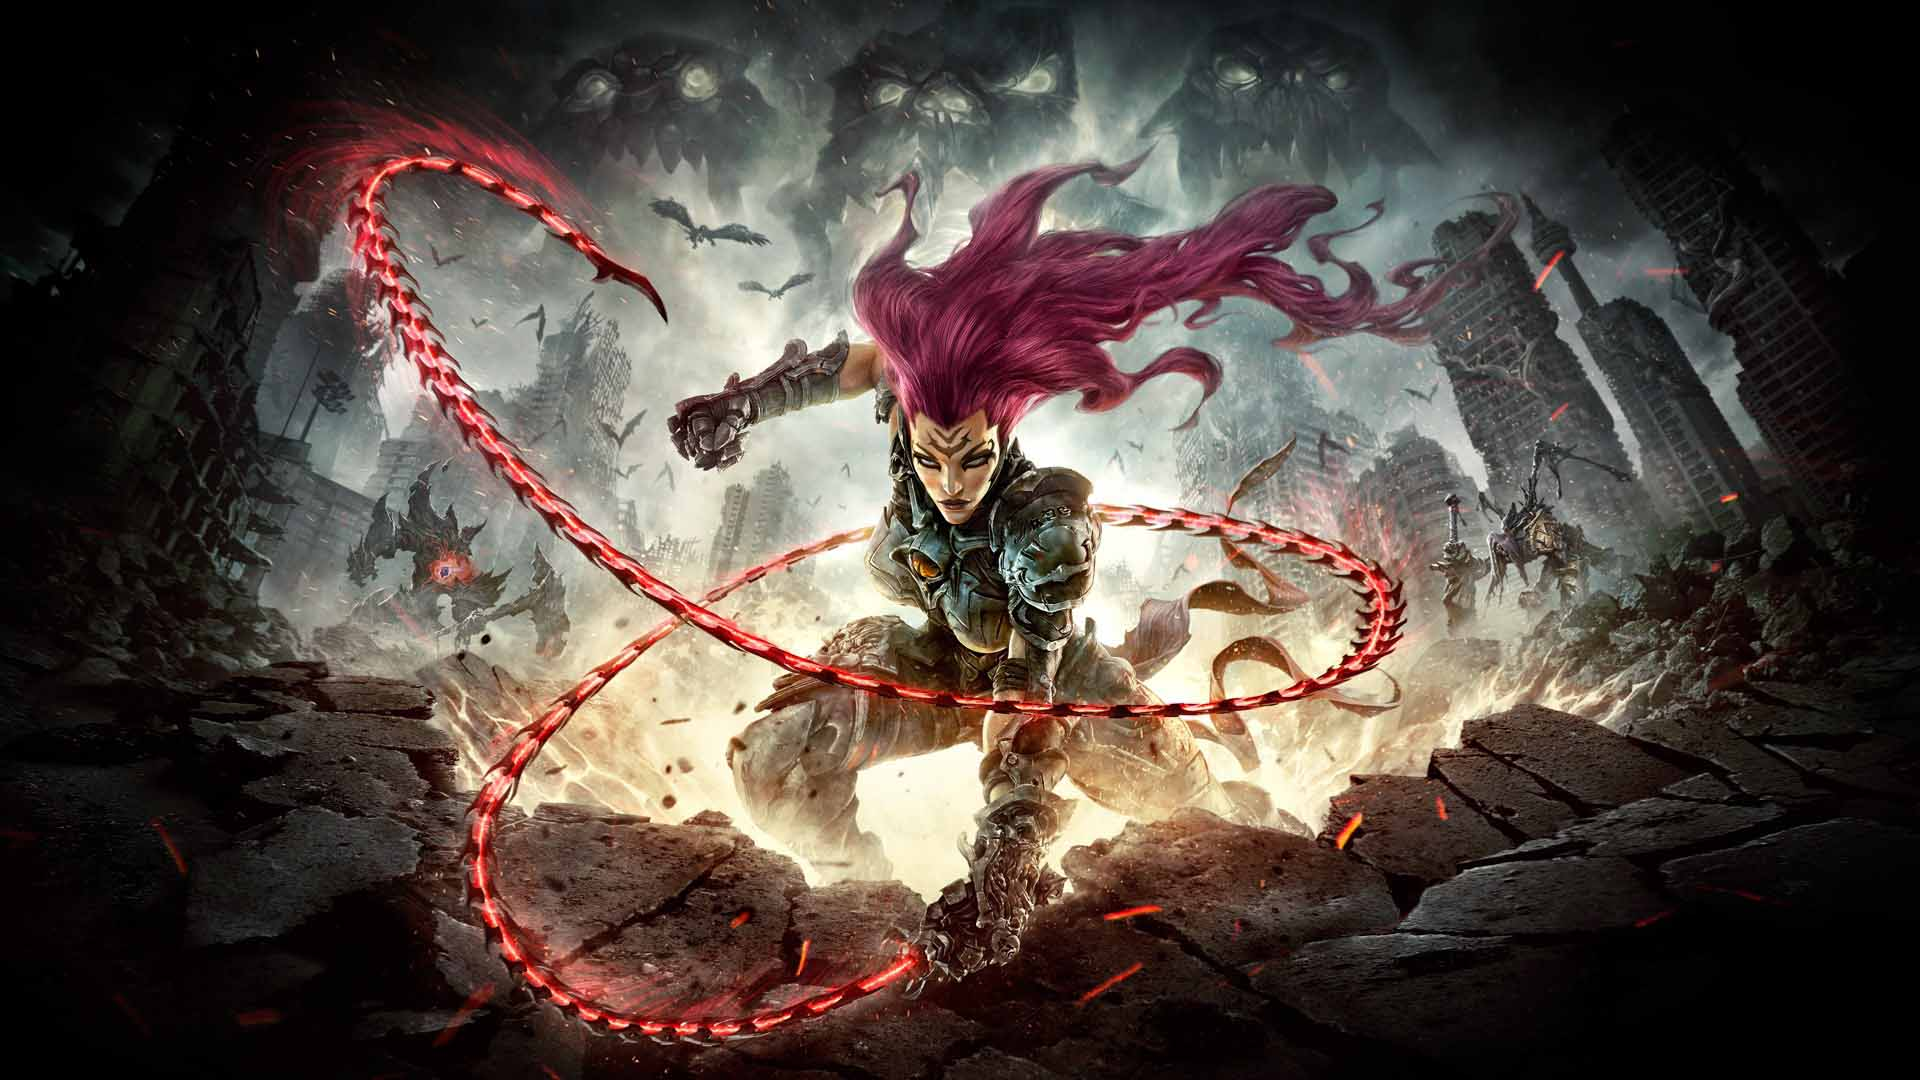 darksiders keepers of the void